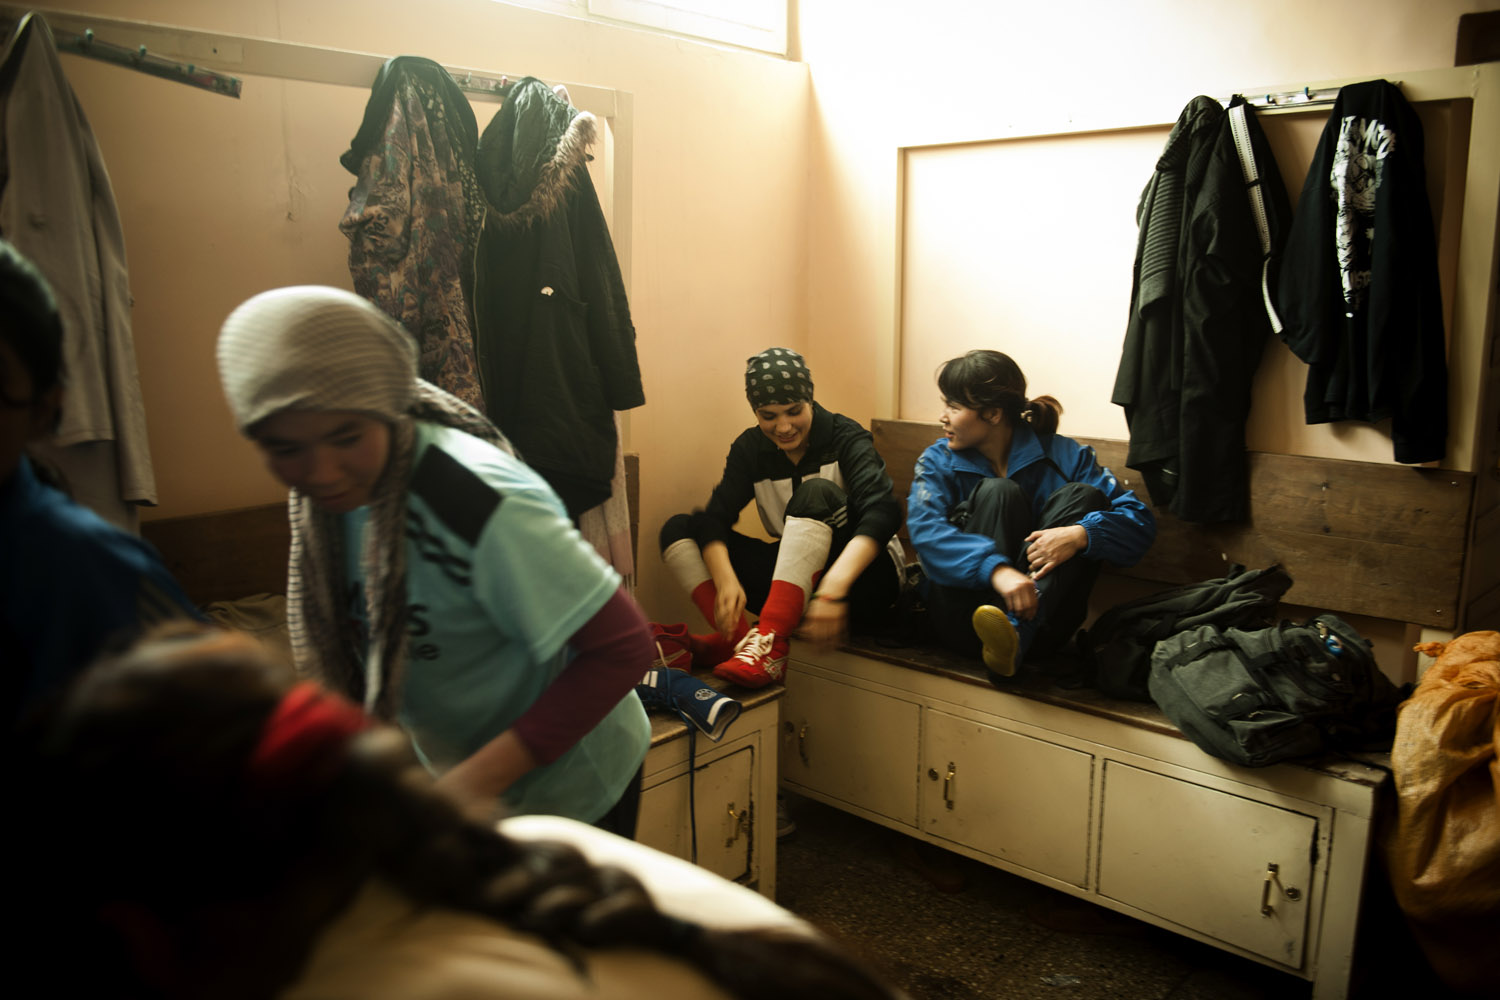 Rahimi rests with other female boxers after practice at the Olympic stadium in Kabul